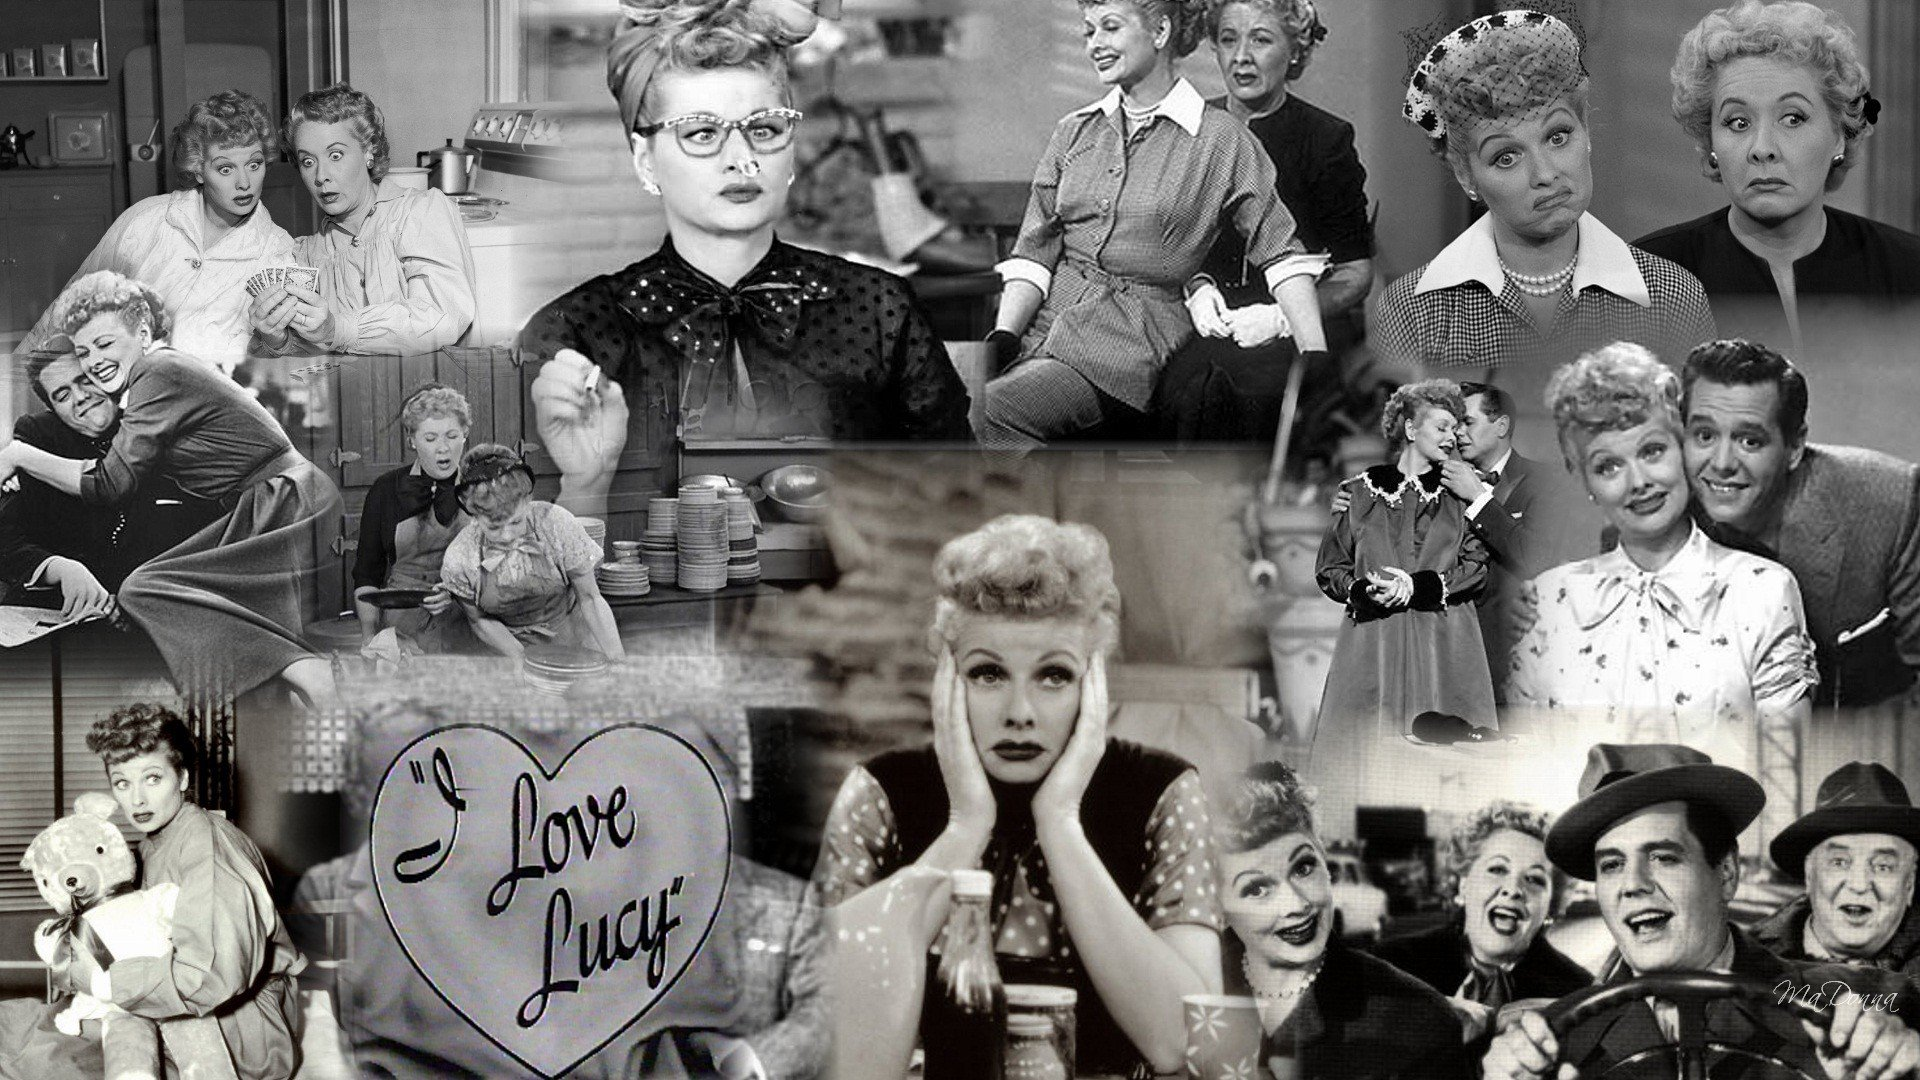 Iphone Wallpaper I Love Lucy : I LOVE LUcY comedy family sitcom television i-love-lucy ...